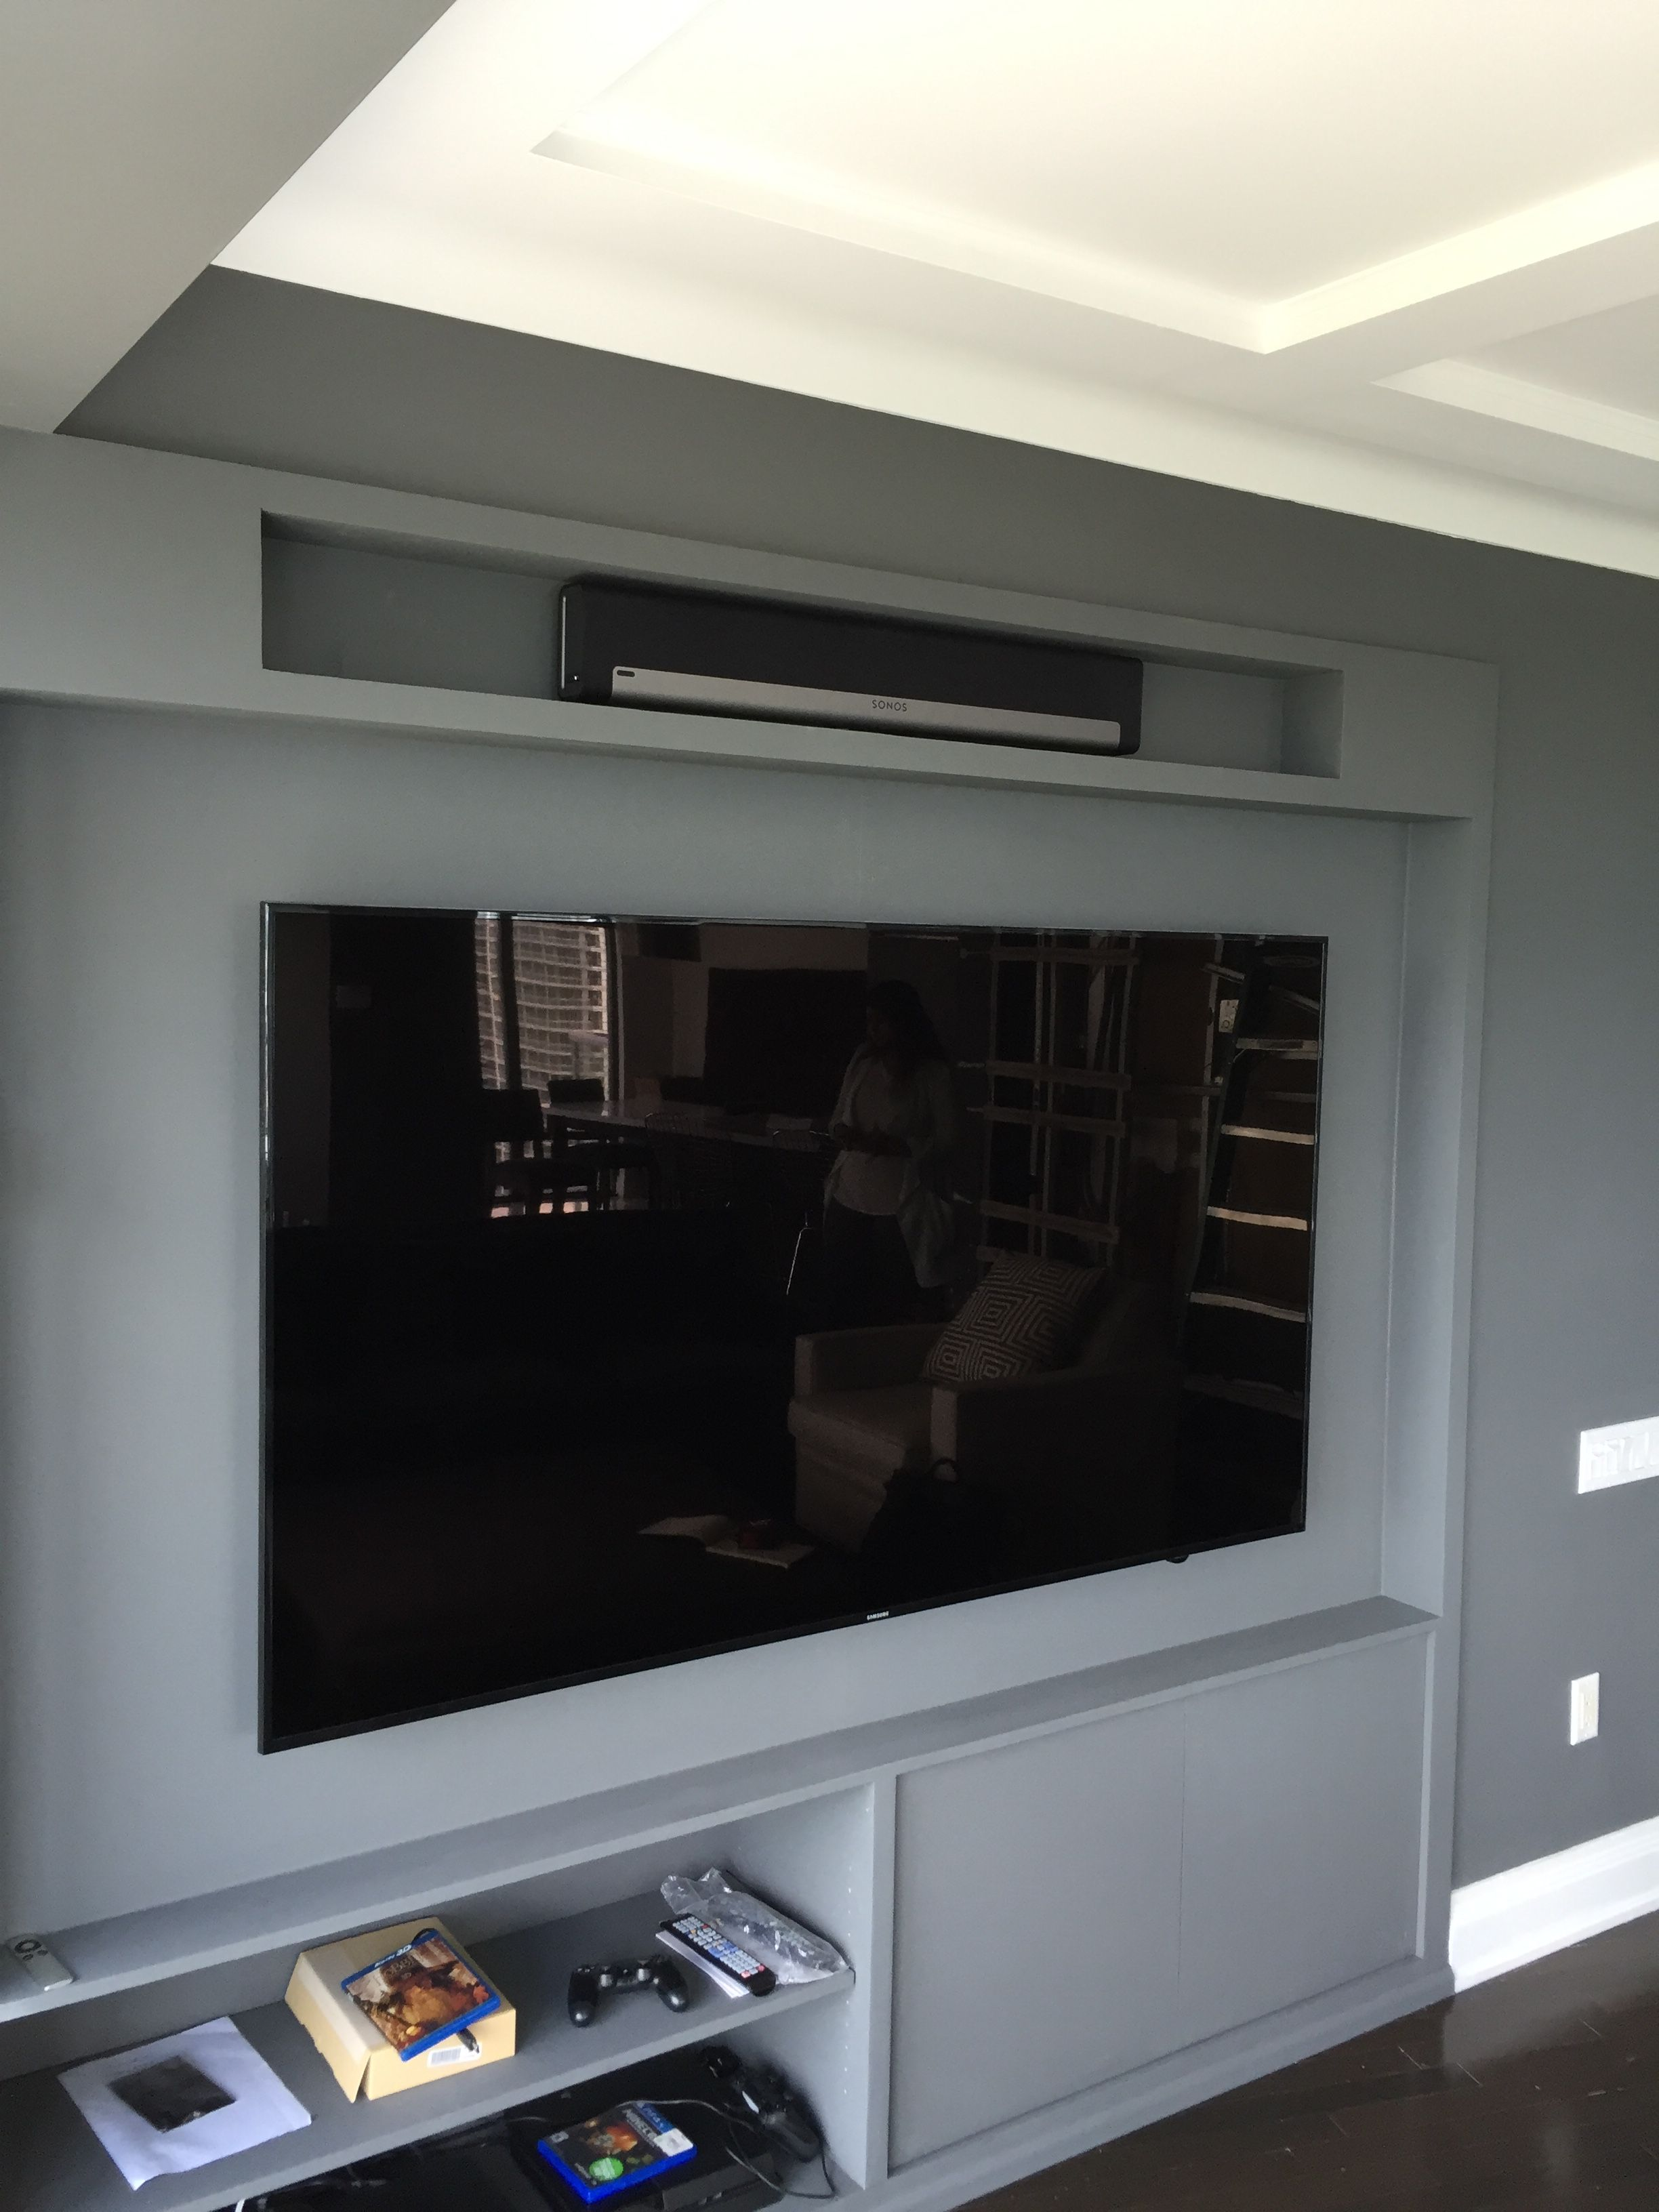 75 Samsung Tv With The Sonos Playbar Mounted And Awaiting The Custom Grille Sonos Playbar Mounted New Homes House